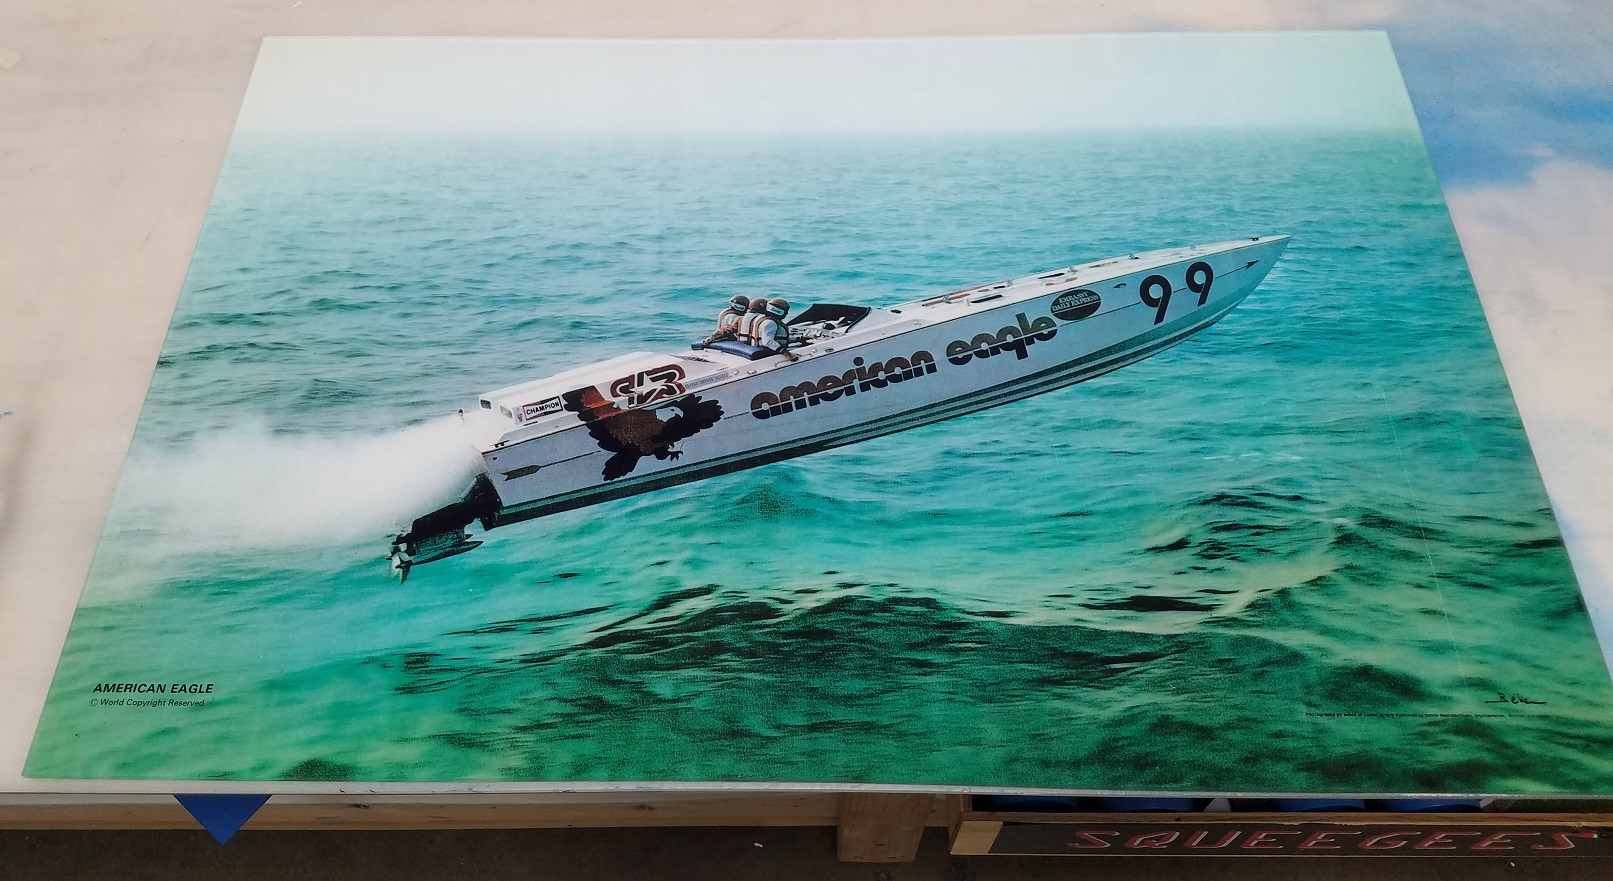 acrylic wall decor, vintage photo touch up, custom photography project, custom home decor, full color printed vinyl, speedboat